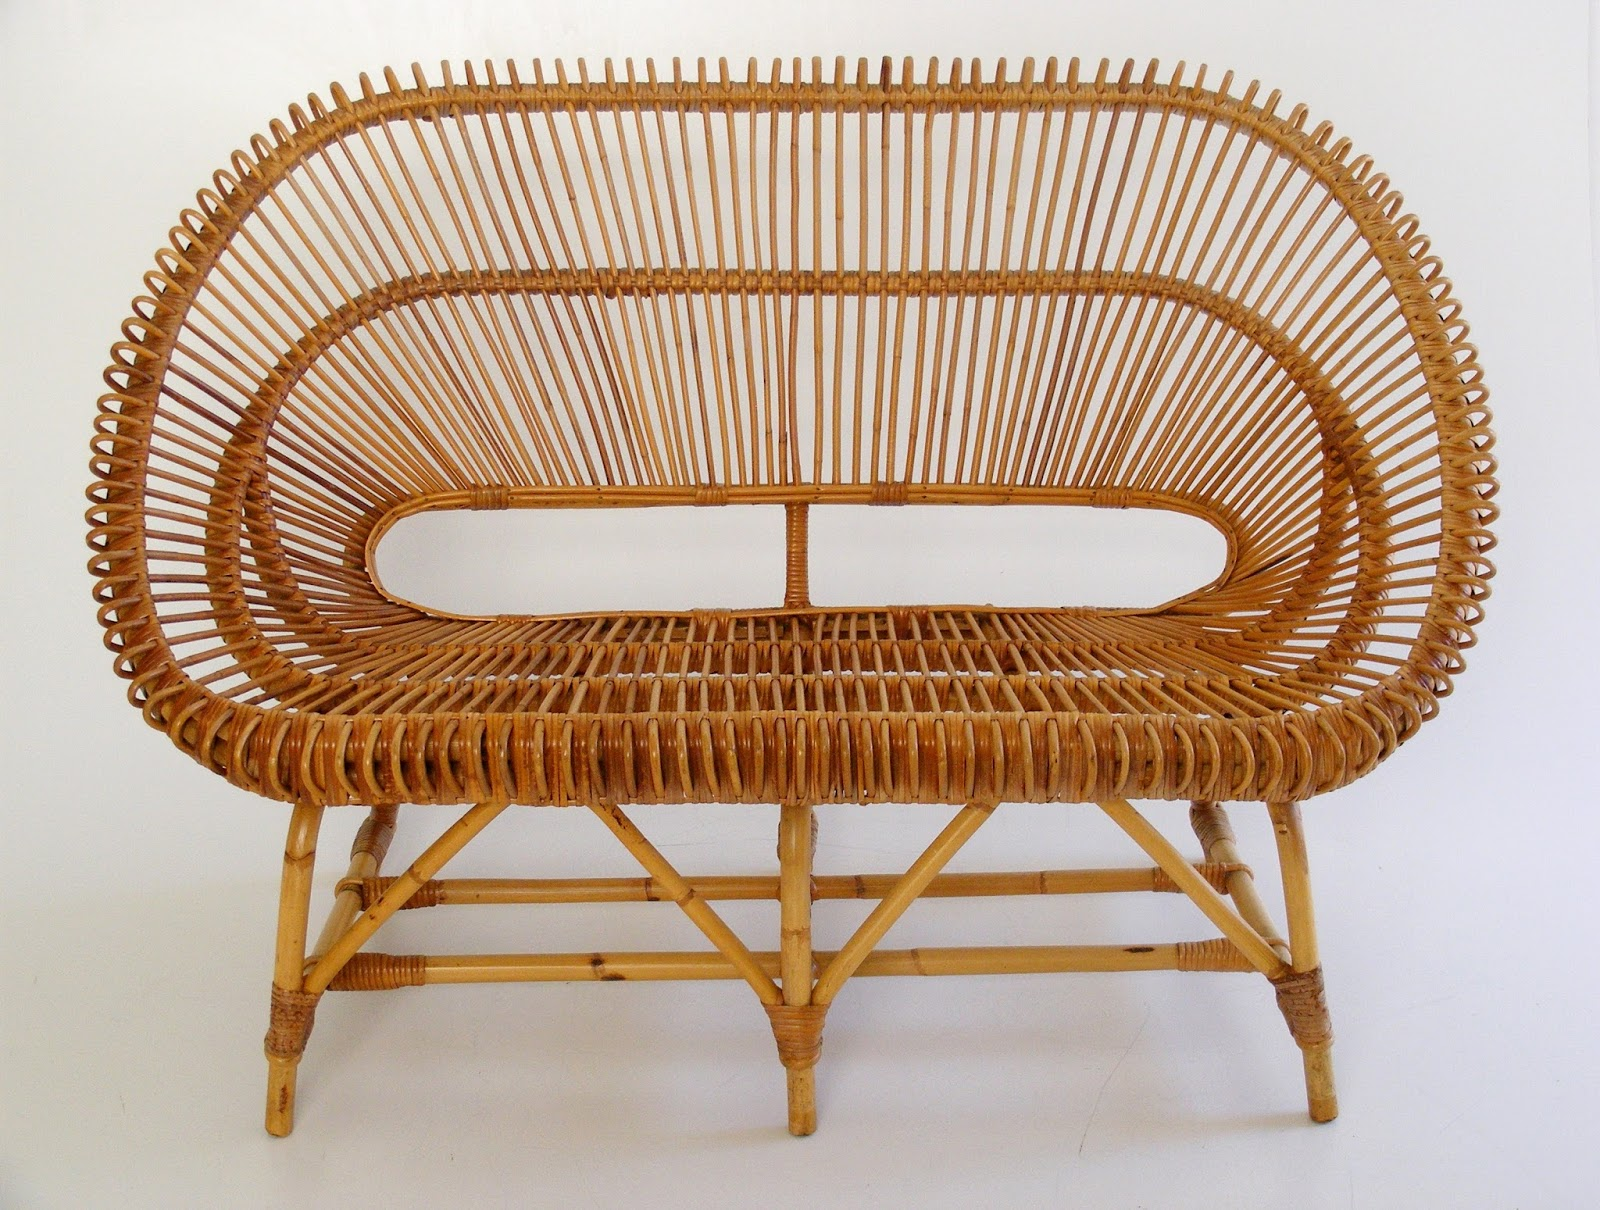 A Beautiful Vintage Two Seater Wicker Couch